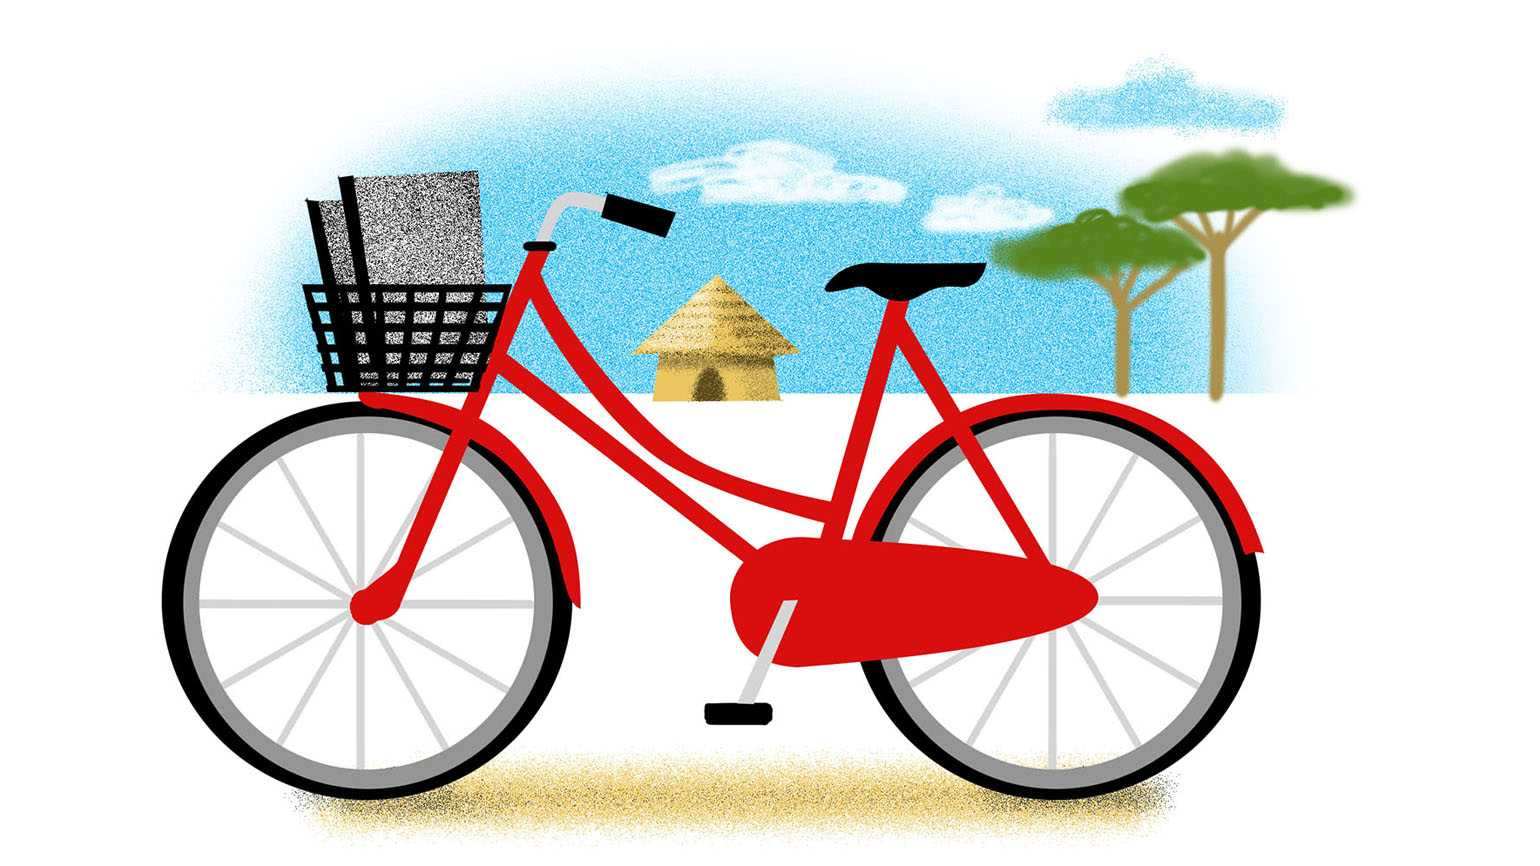 An artist's rendering of a red bicycle with school notebooks in the basket.